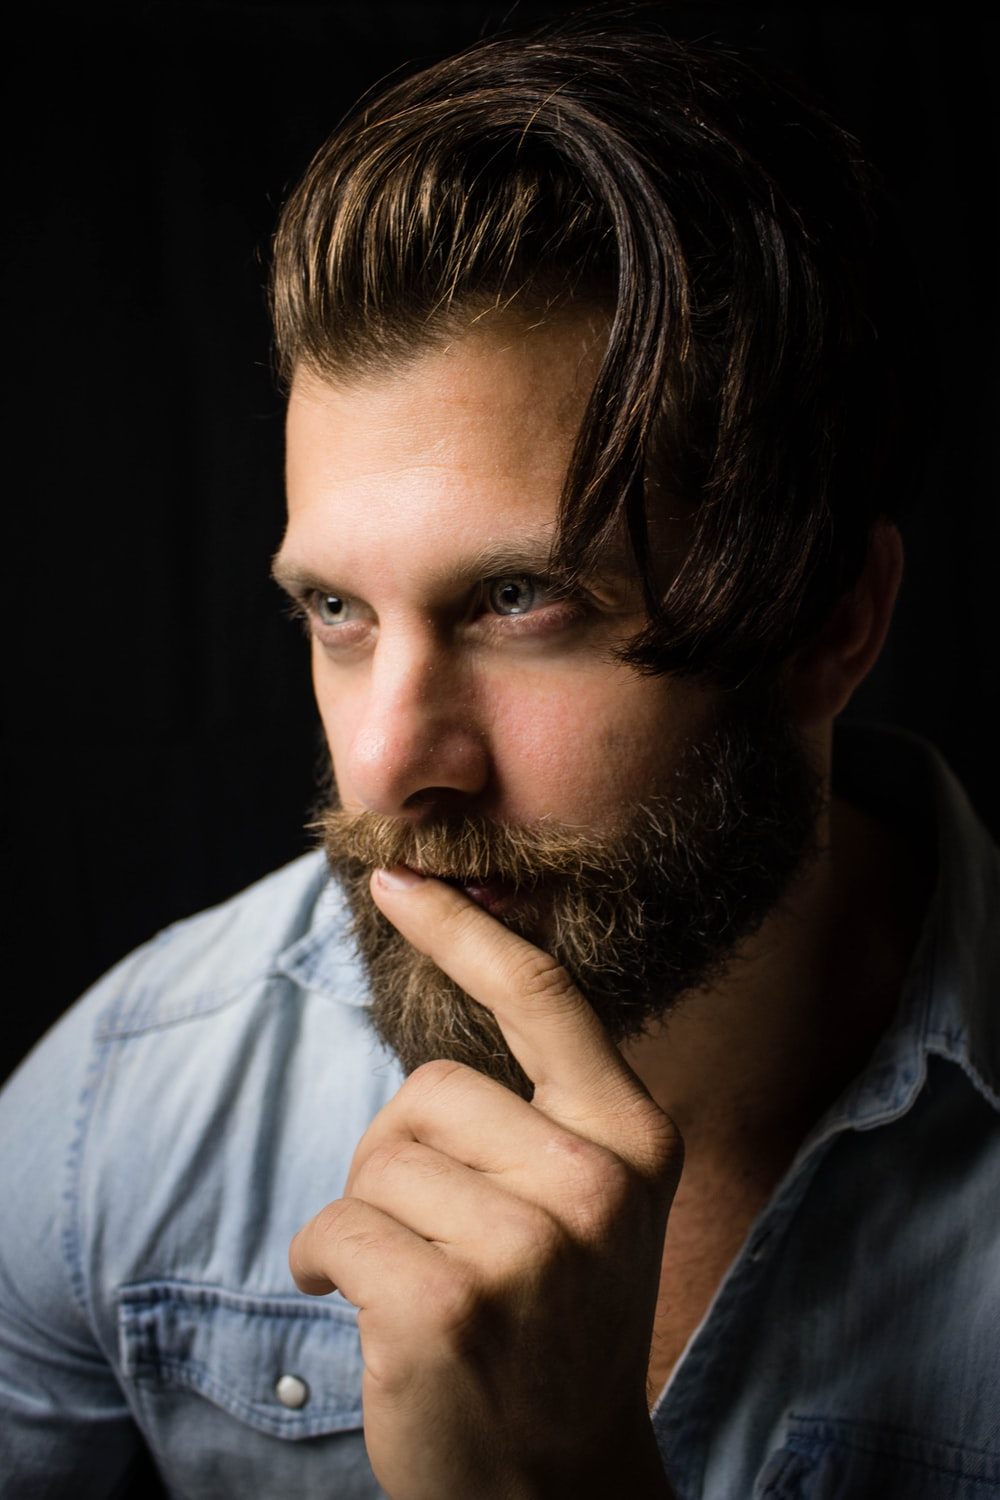 man with index finger on lips